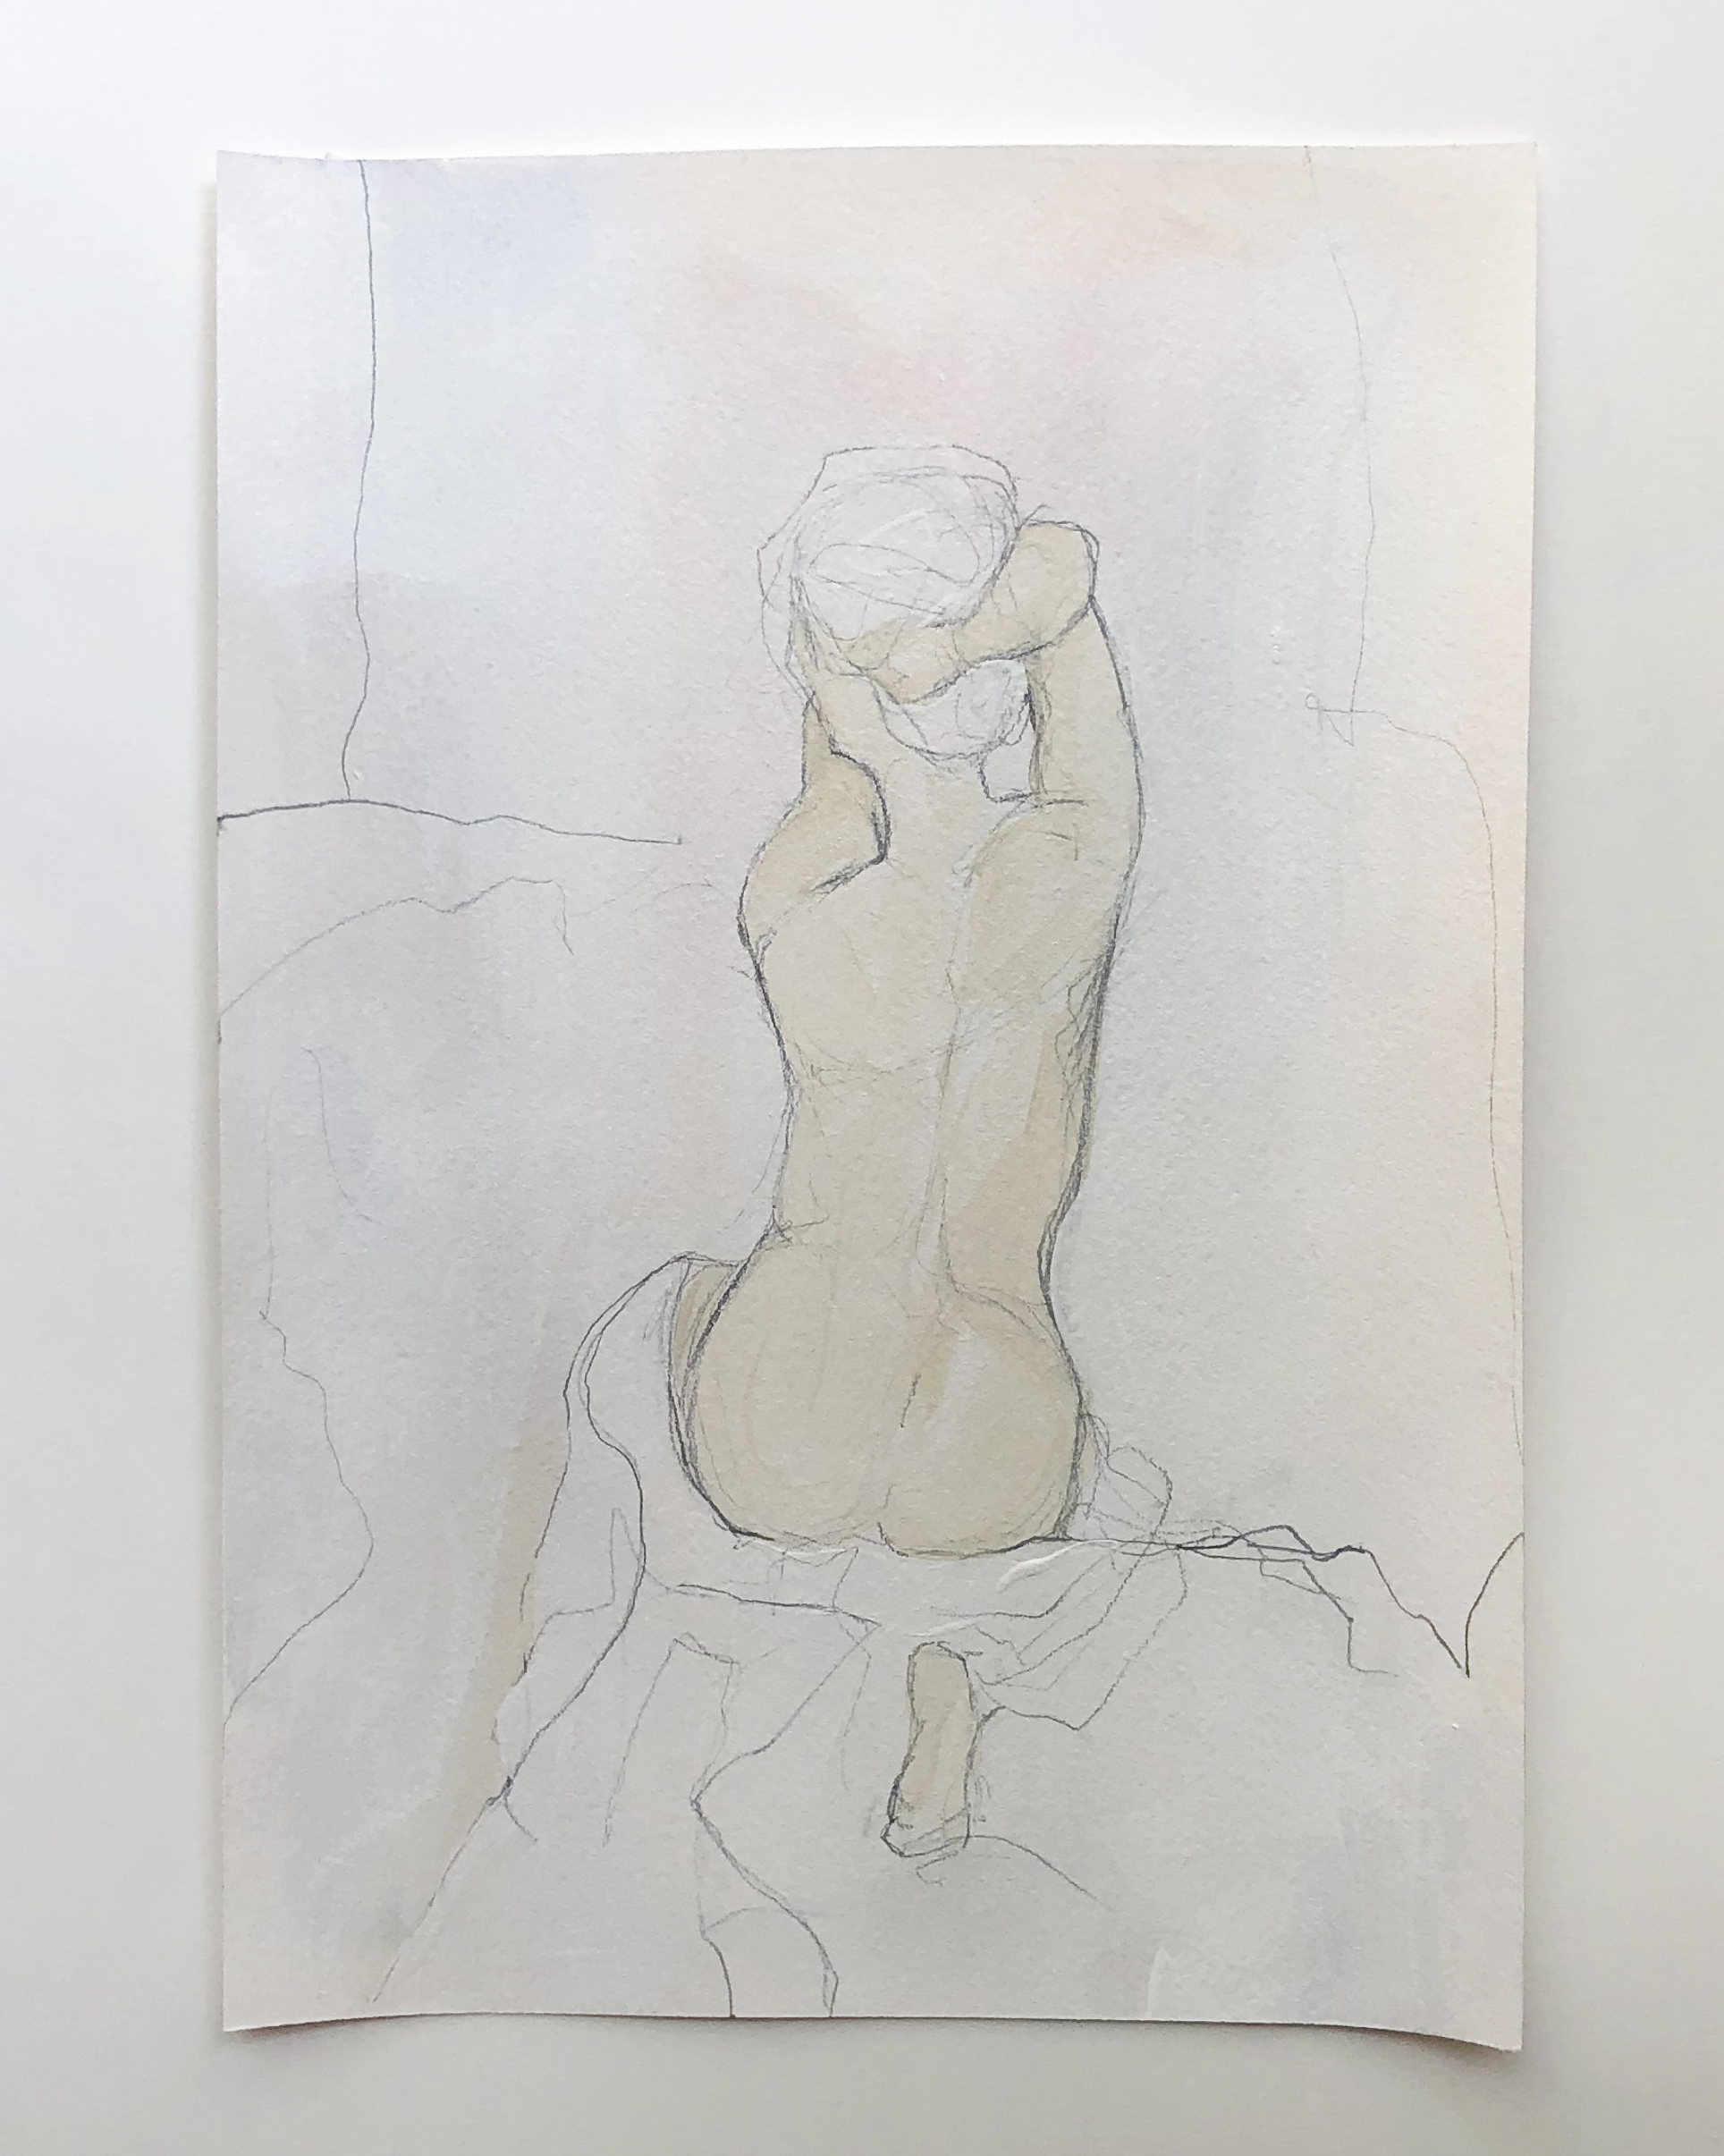 """""""Figure Study"""" series   $150 - Acrylic and graphite on archival paper / 8x11"""" / Available at Lyons Share Gallery"""